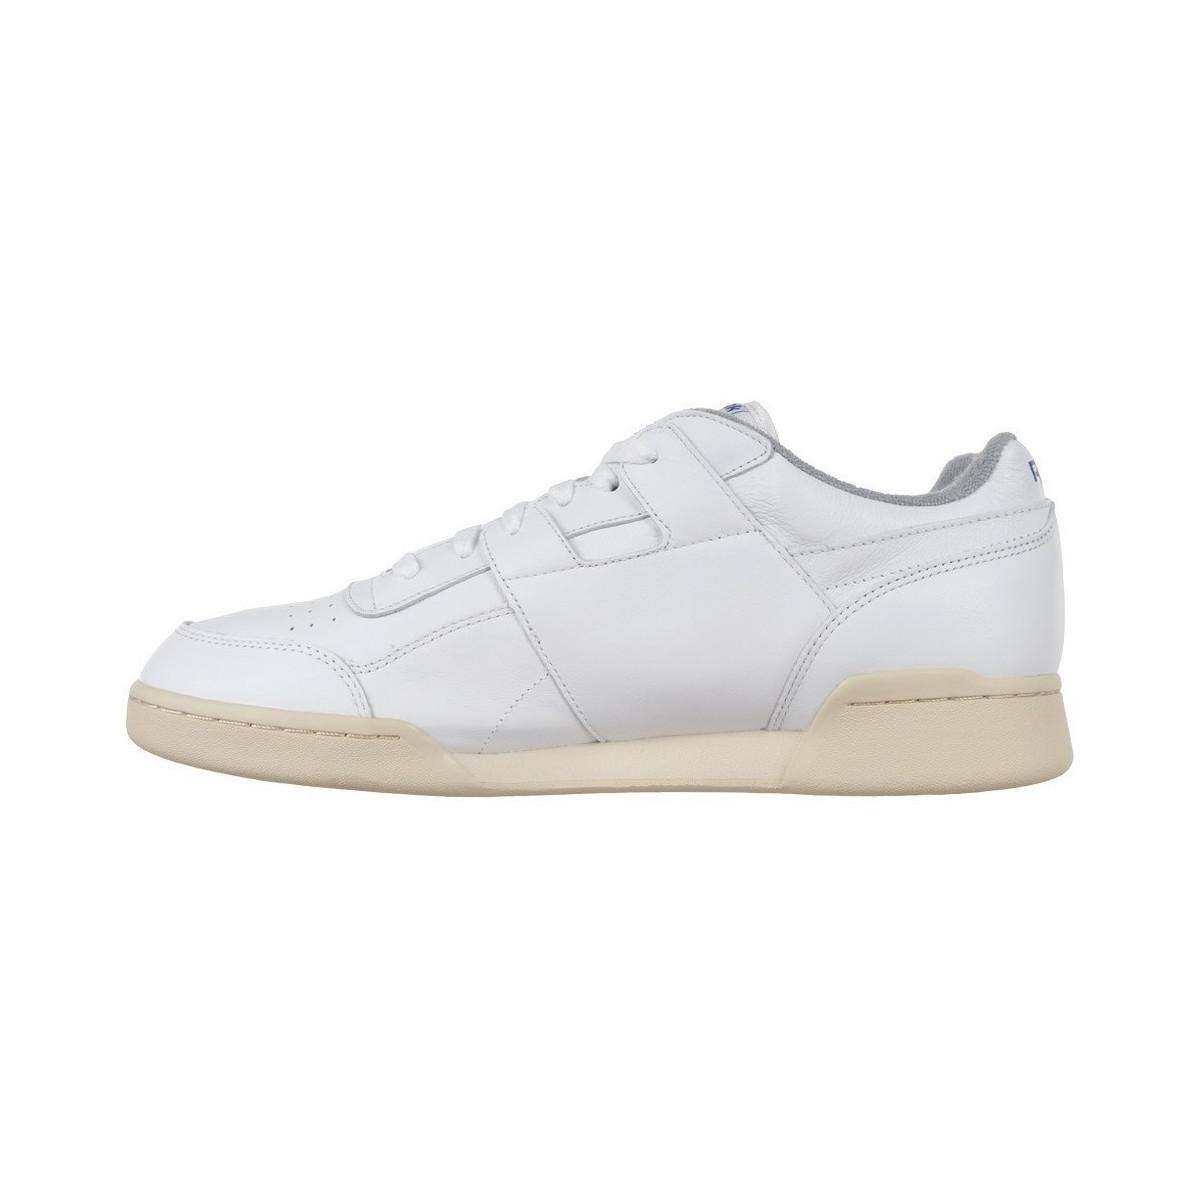 222890adc74 Reebok Classic Workout Plus R12 Men s Shoes (trainers) In White in ...